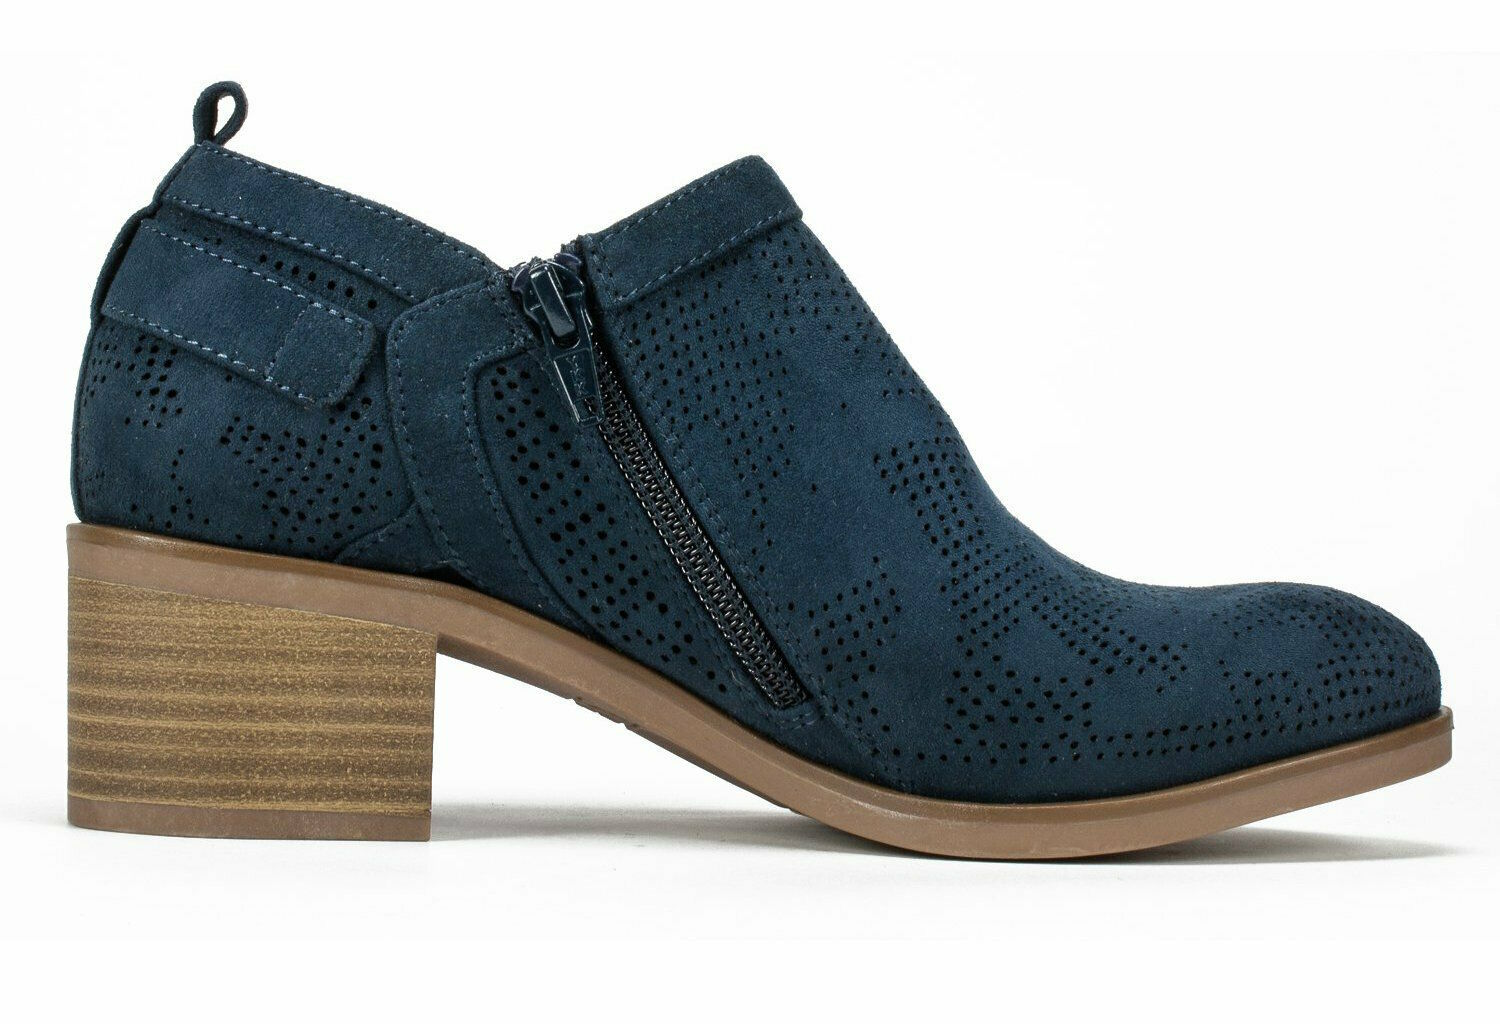 Womens White Mountain Avenue Bootie - Navy/Suedette Size 8 image 4